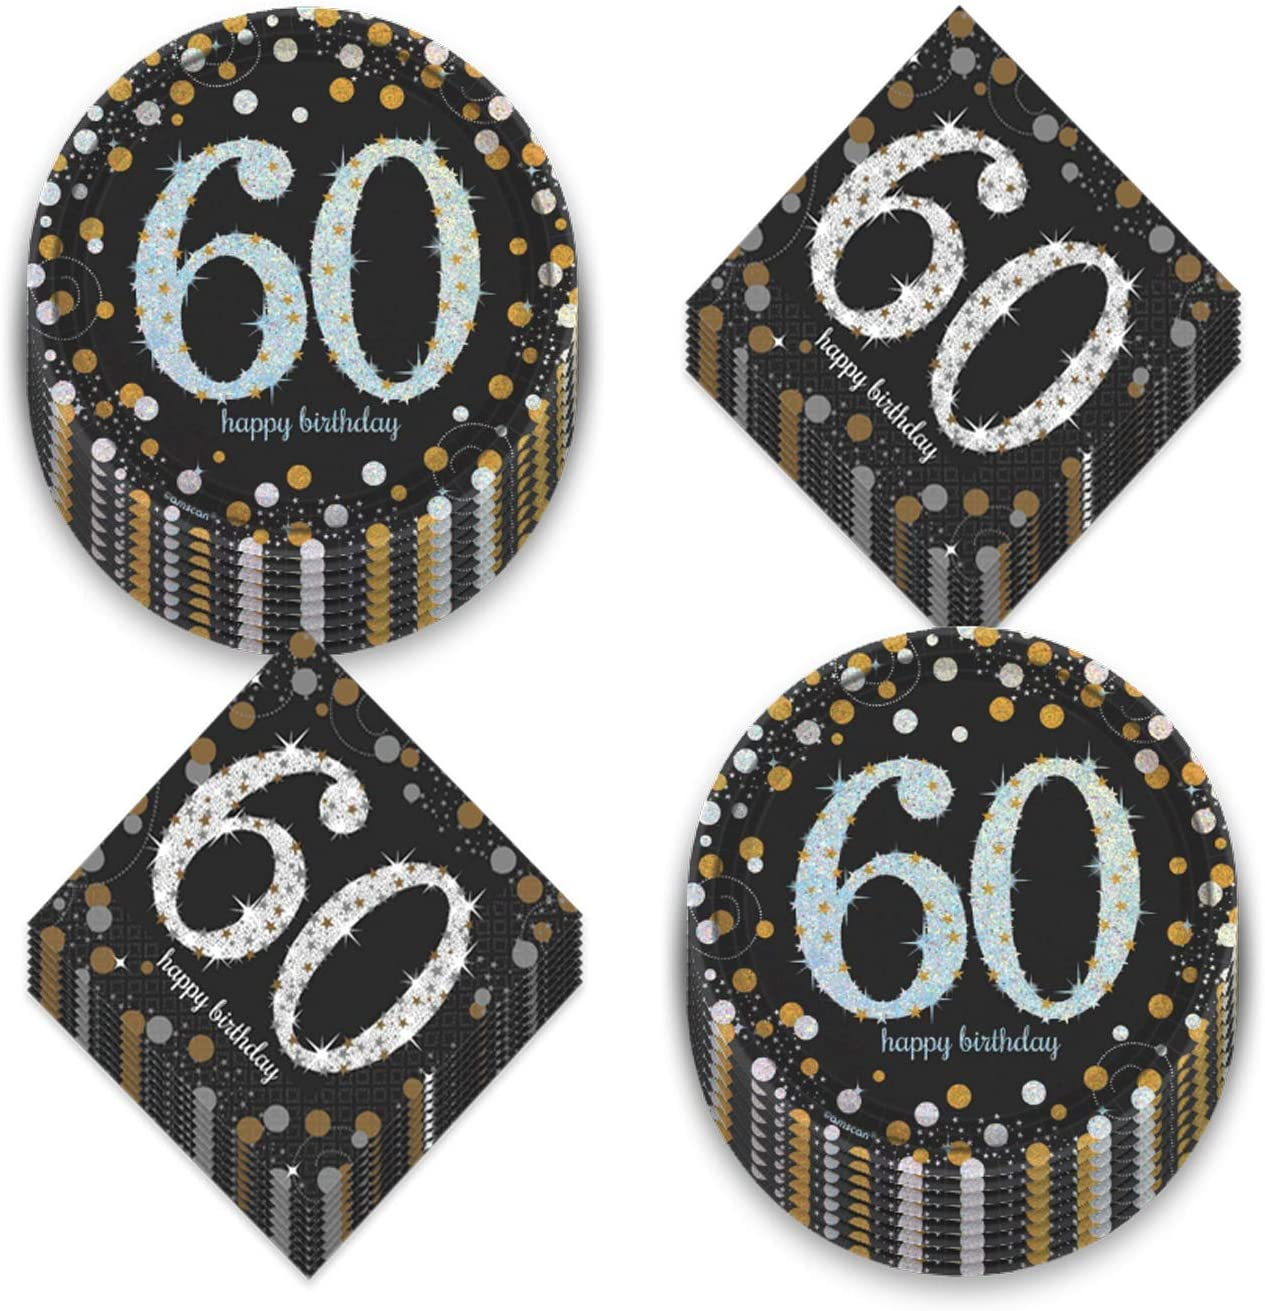 60th Birthday Party Supplies - Metallic Silver and Gold Dot Paper Dessert Plates and Beverage Napkins (Serves 16)